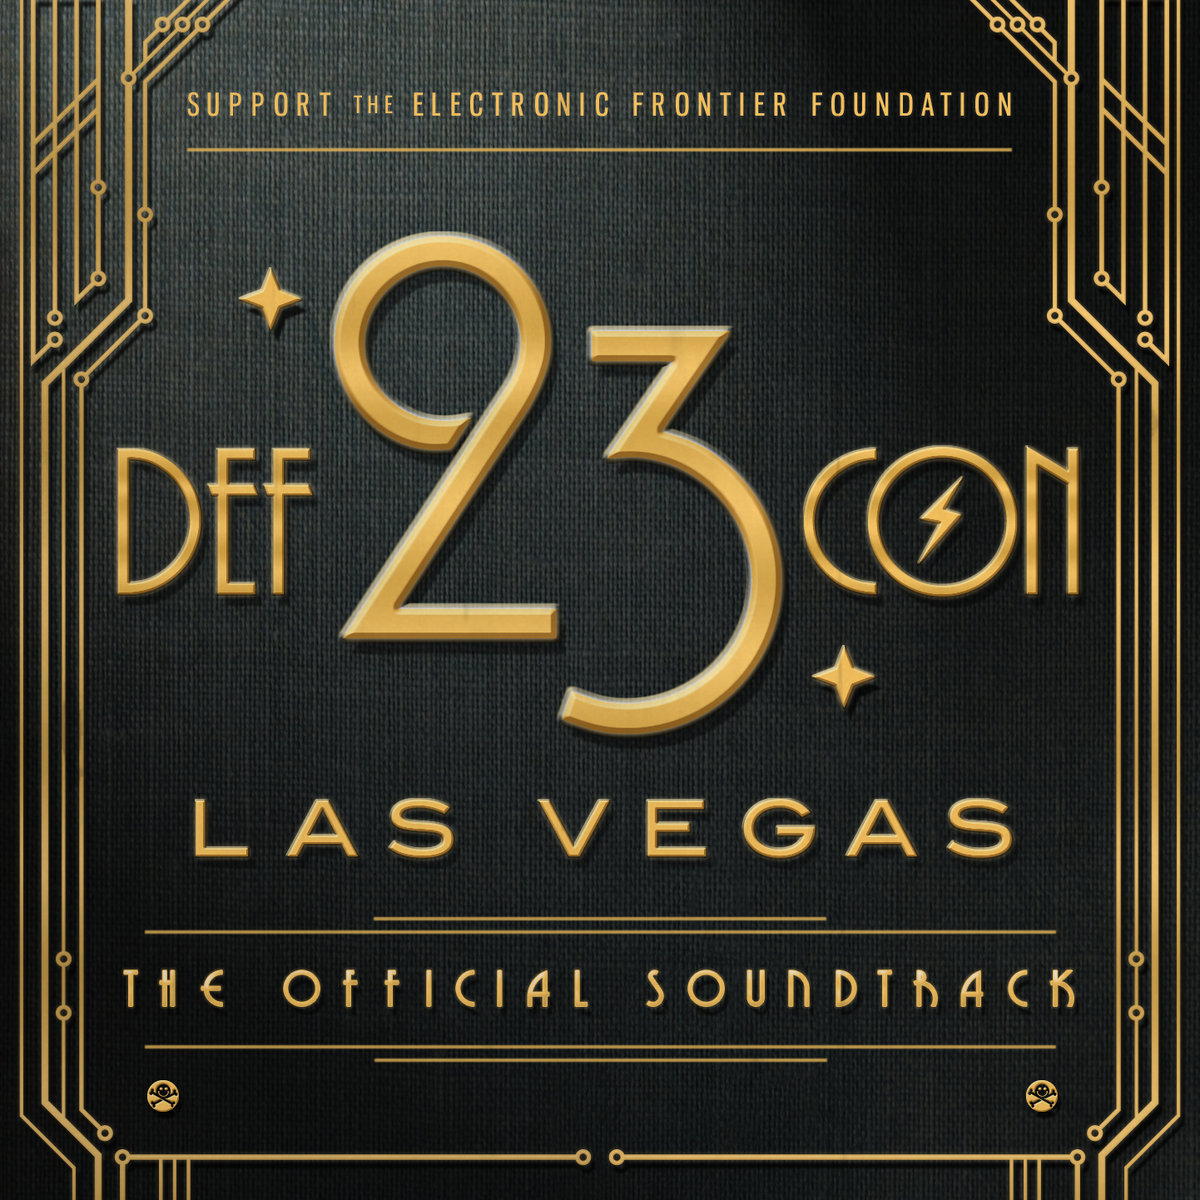 Various Artists - DEF CON 23: The Official Soundtrack @ 'DEF CON 23: The Official Soundtrack' album (bass, charity)